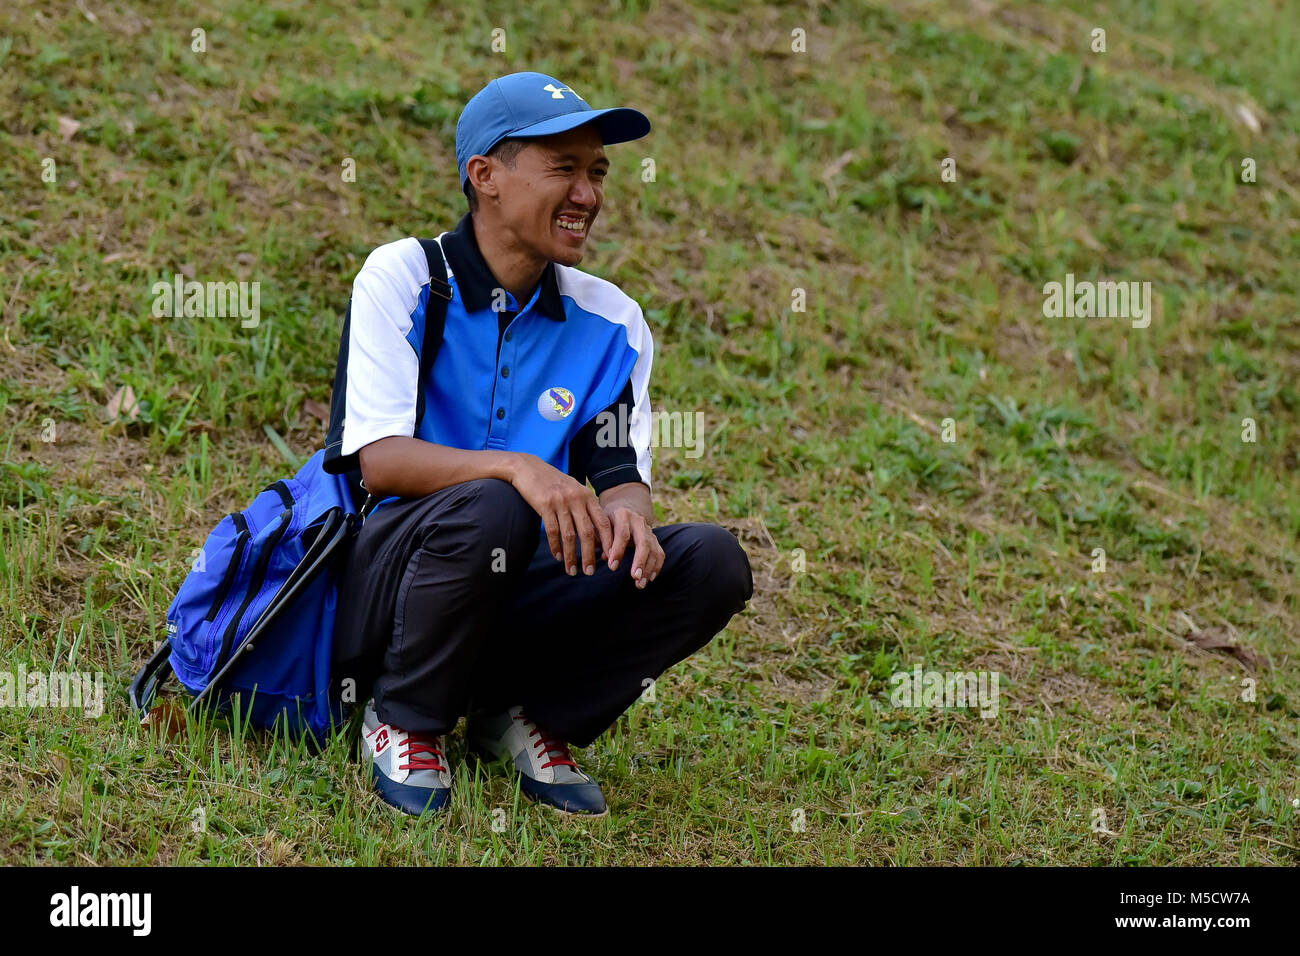 Danau, UKM Bangi - FEBRUARY 10: Spectators watching a tee shot on the 11th hole during Round One of the Danau Junior - Stock Image